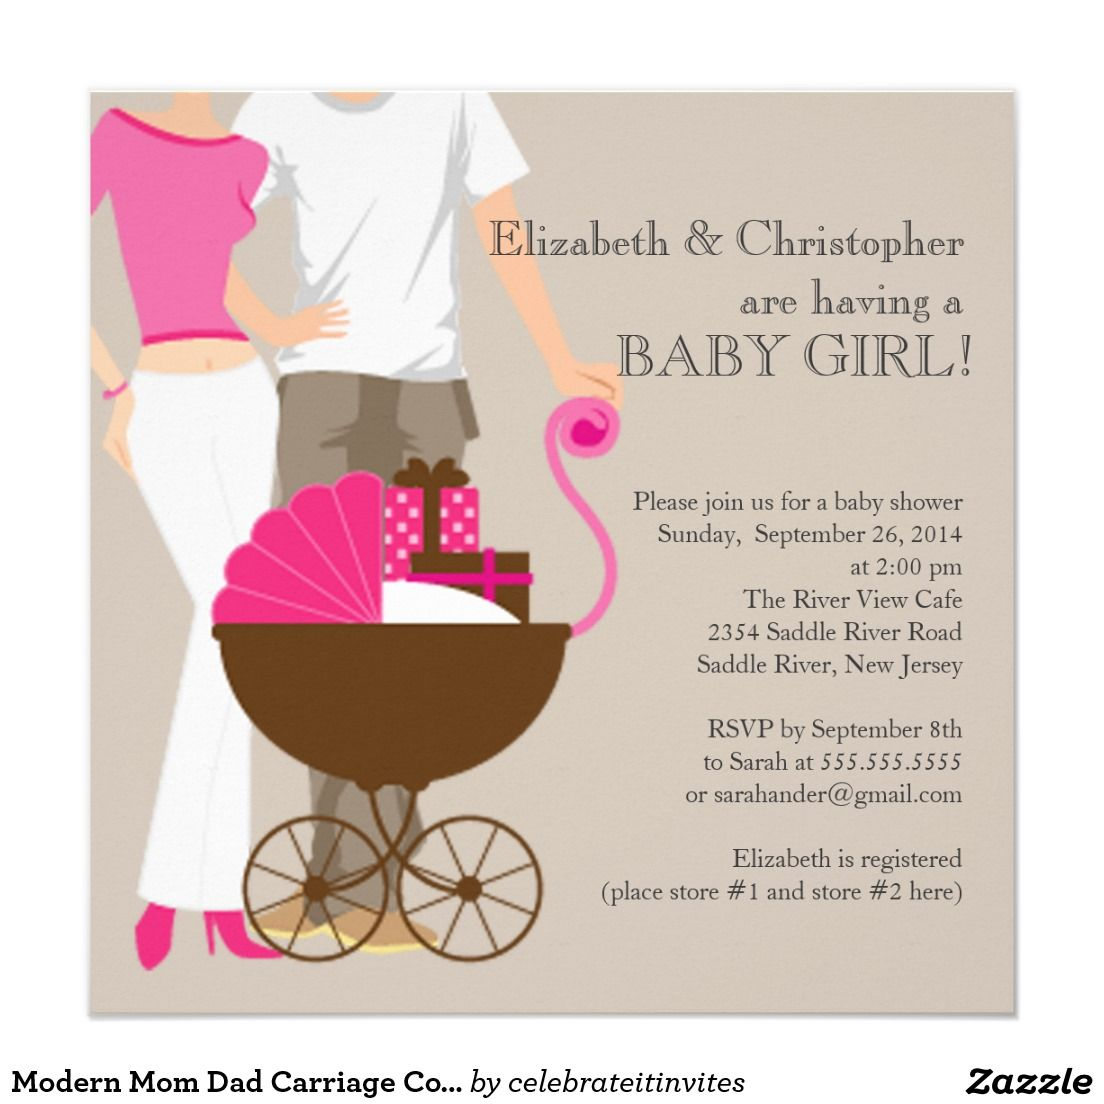 Modern Mom Dad Carriage Couple Baby Shower Card | Baby shower ...